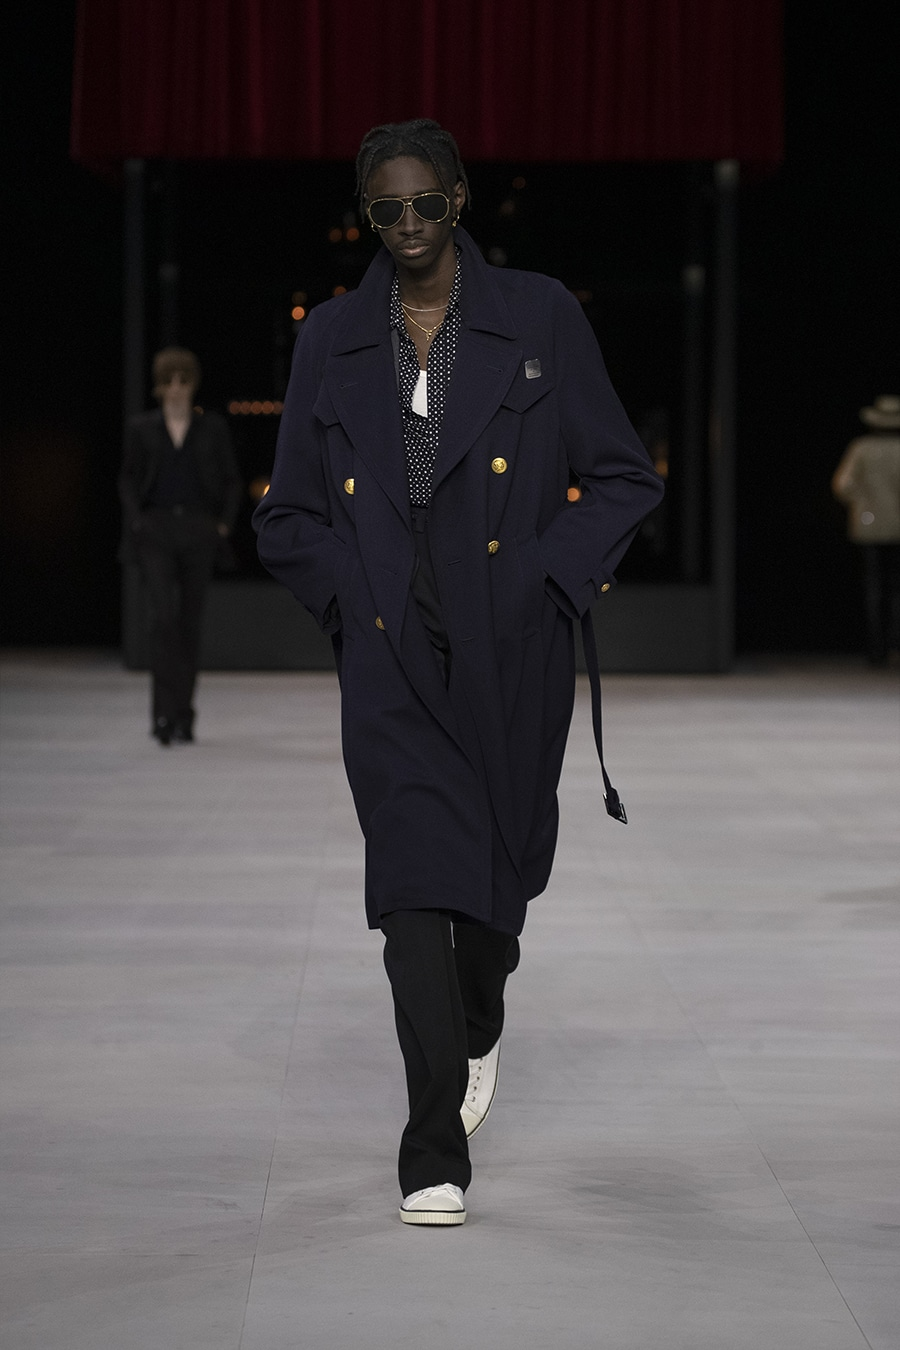 Male Runway Model in Celine